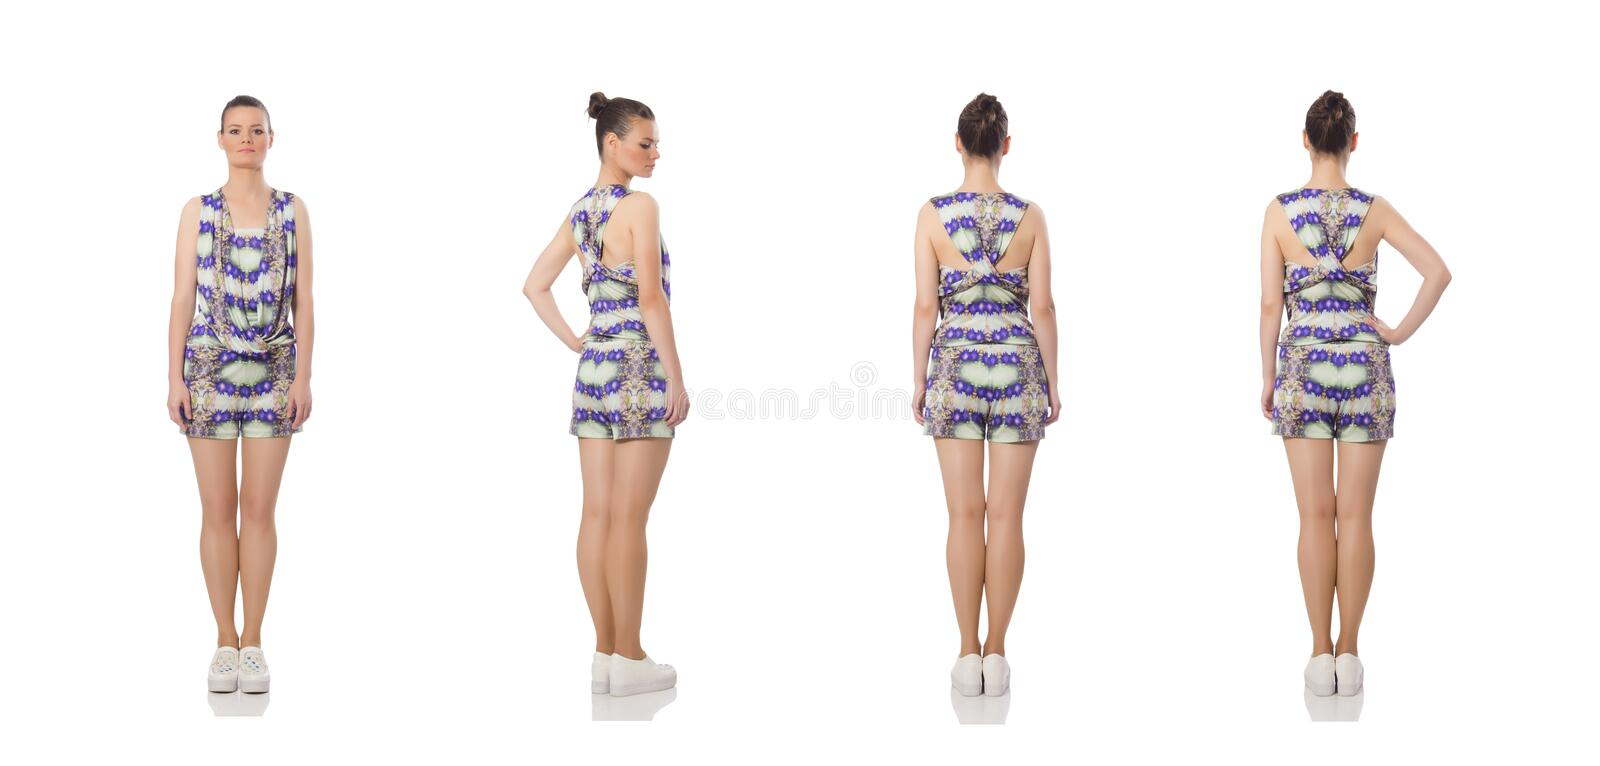 Pretty model wearing purple floral dress isolated on white royalty free stock photos